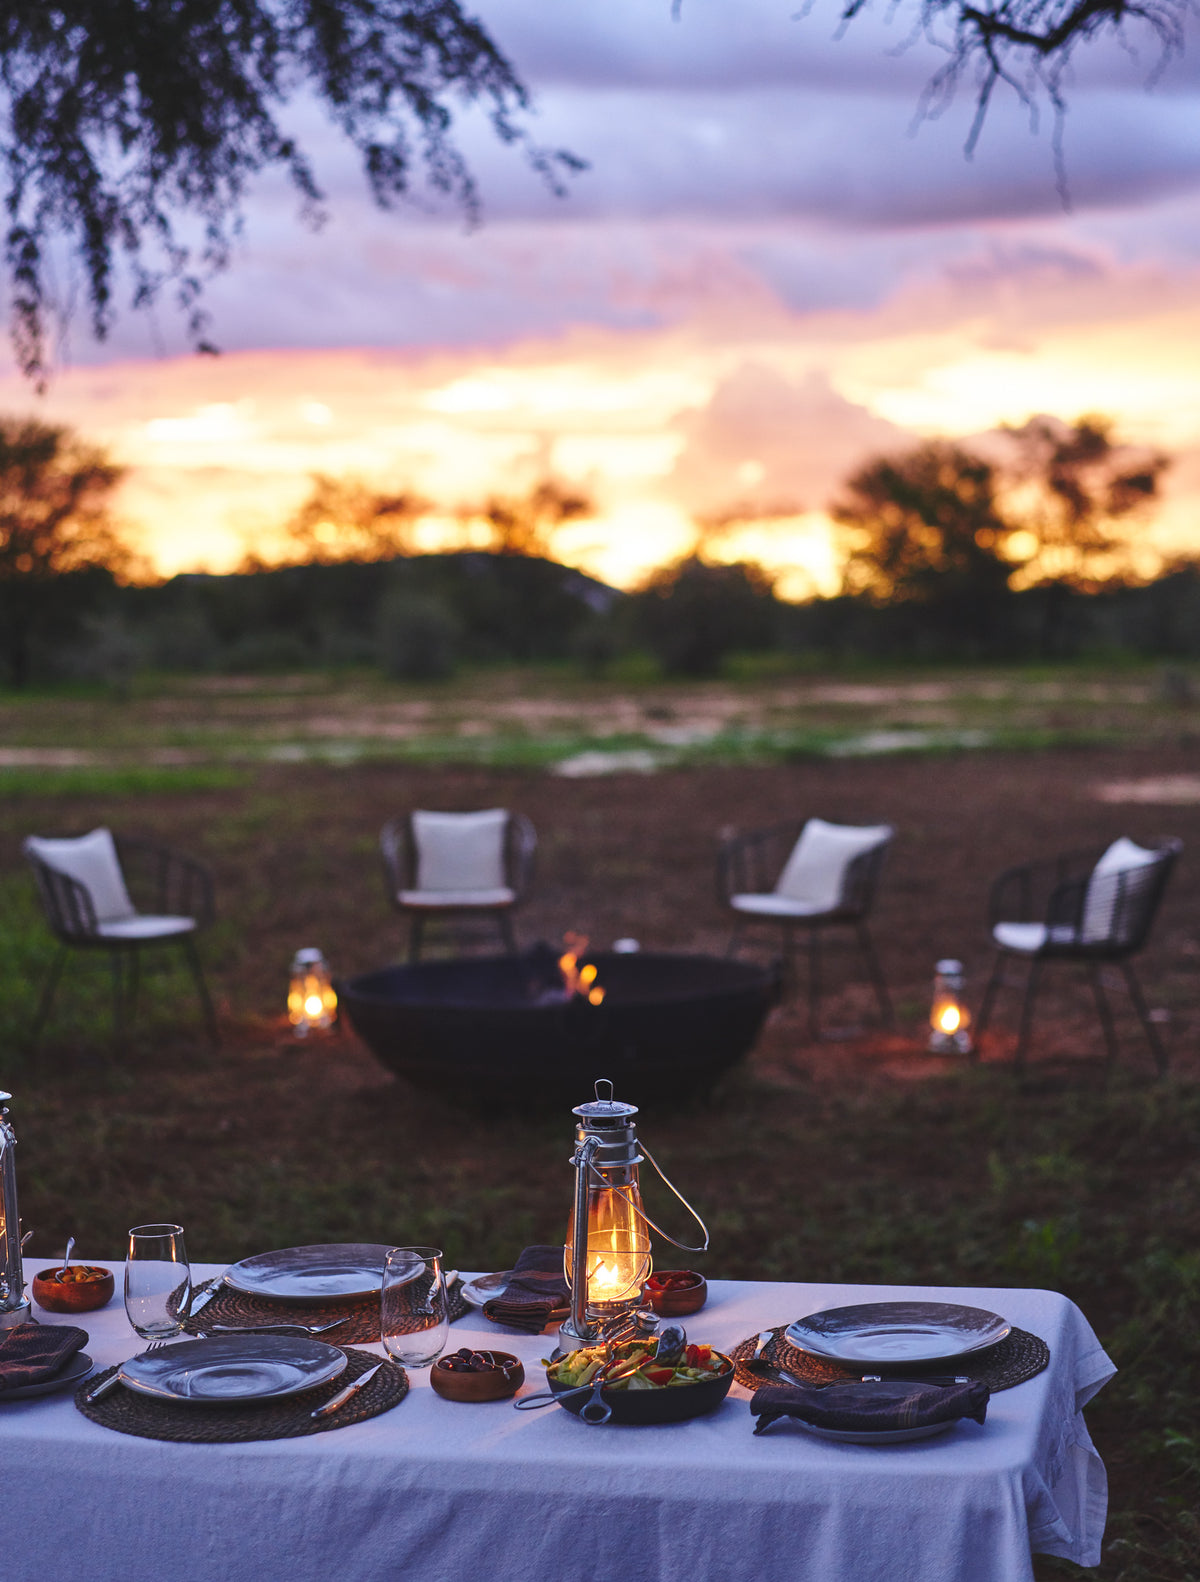 Habitas, Namibia - dinner table set with candle lanterns with a fire pit in the background at sunset